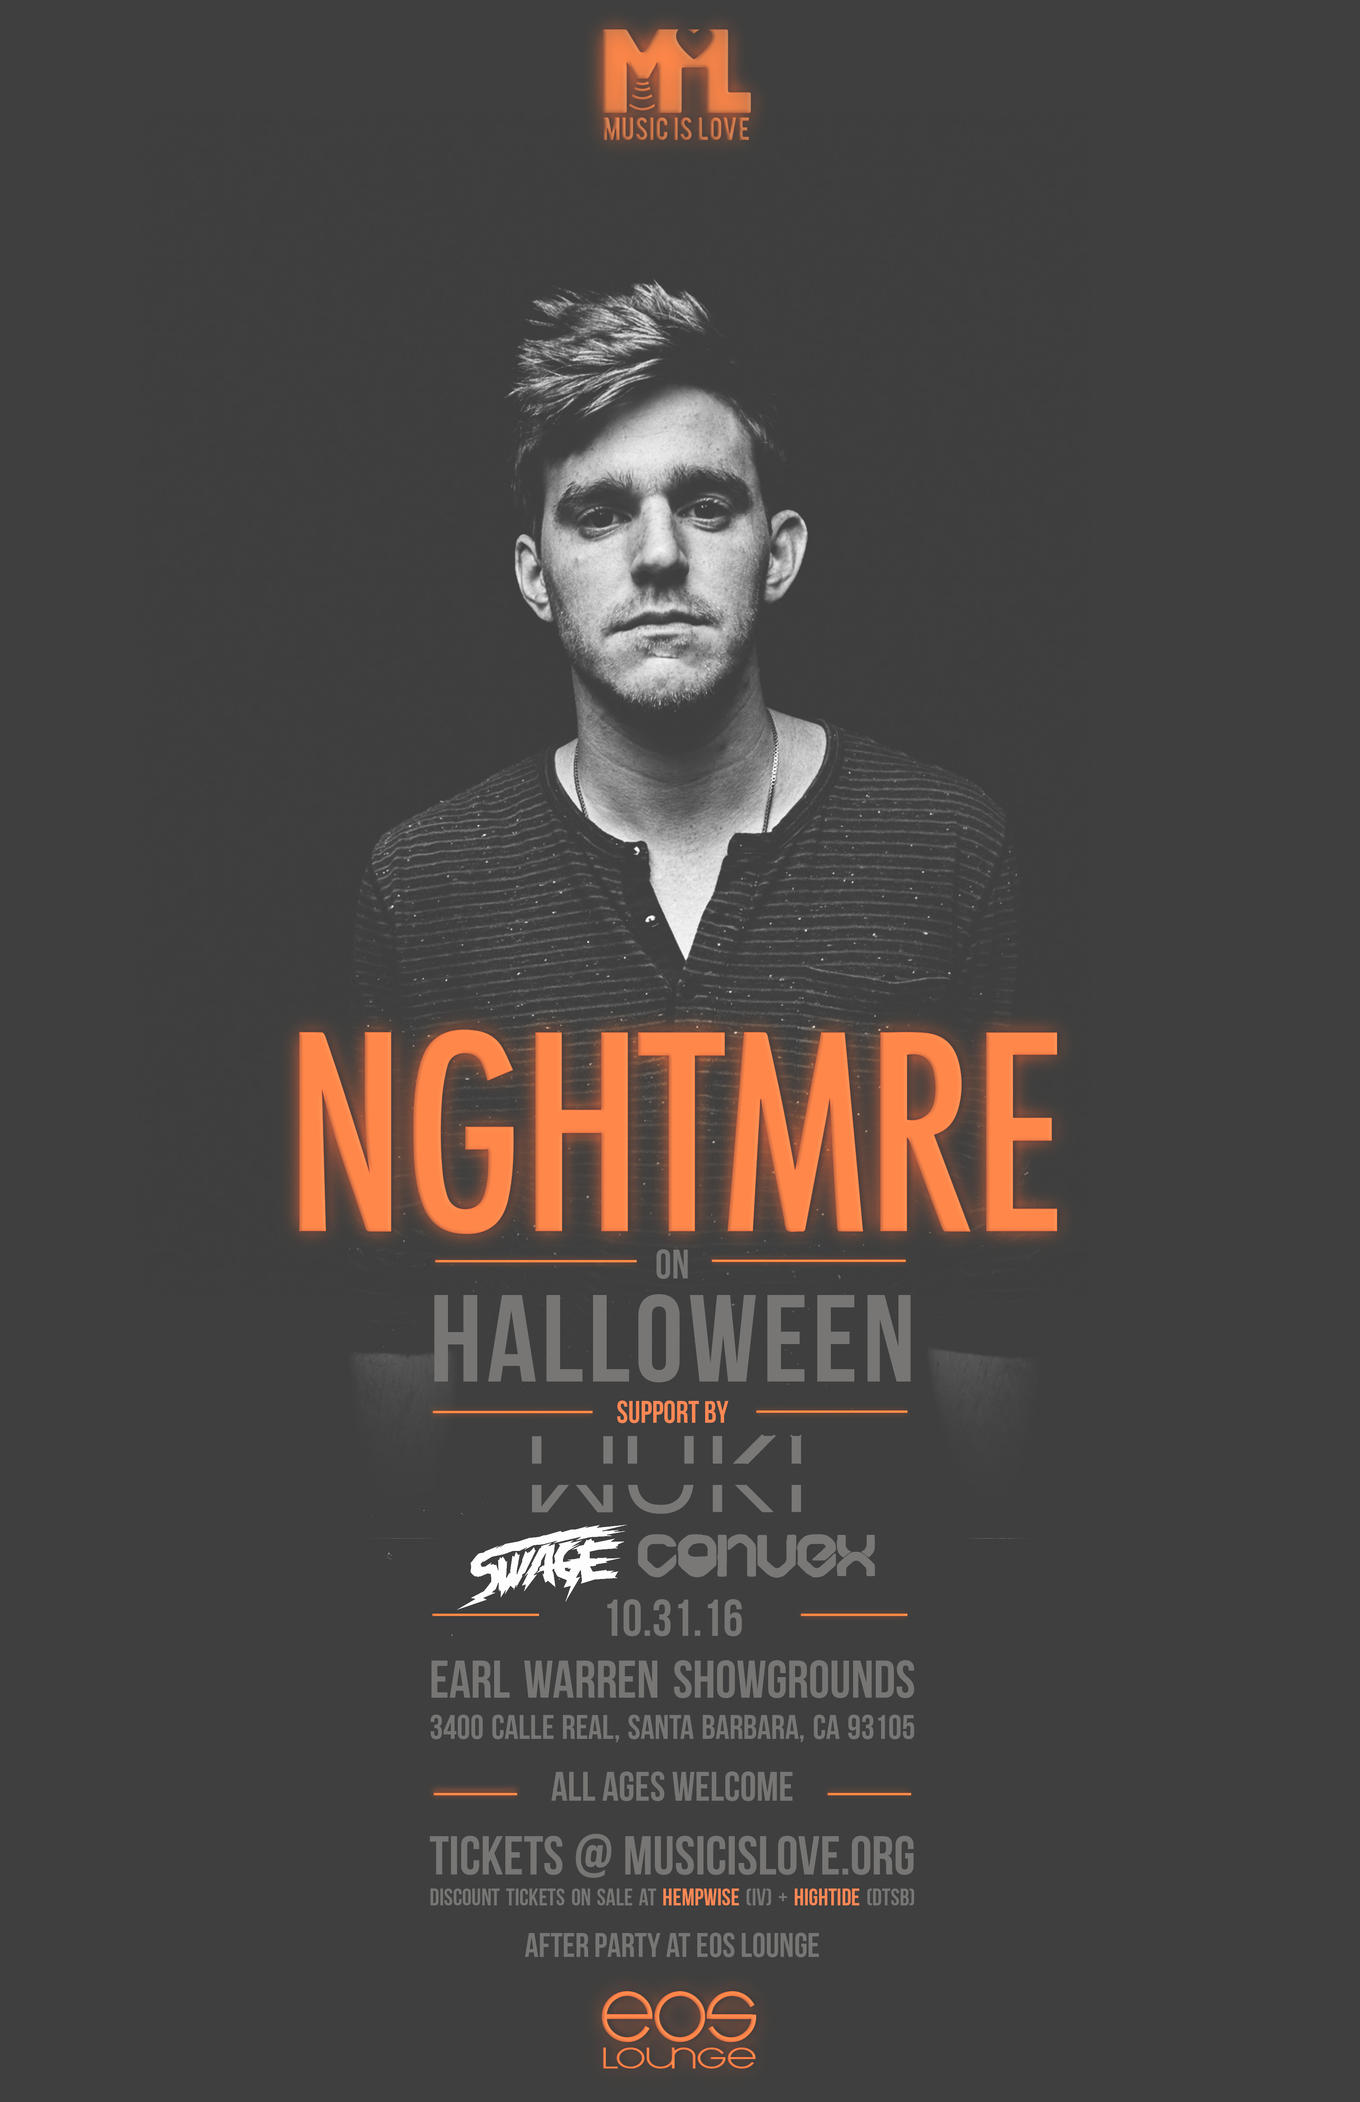 nghtmre on halloween at earl warren show grounds 10.31.16 - tickets